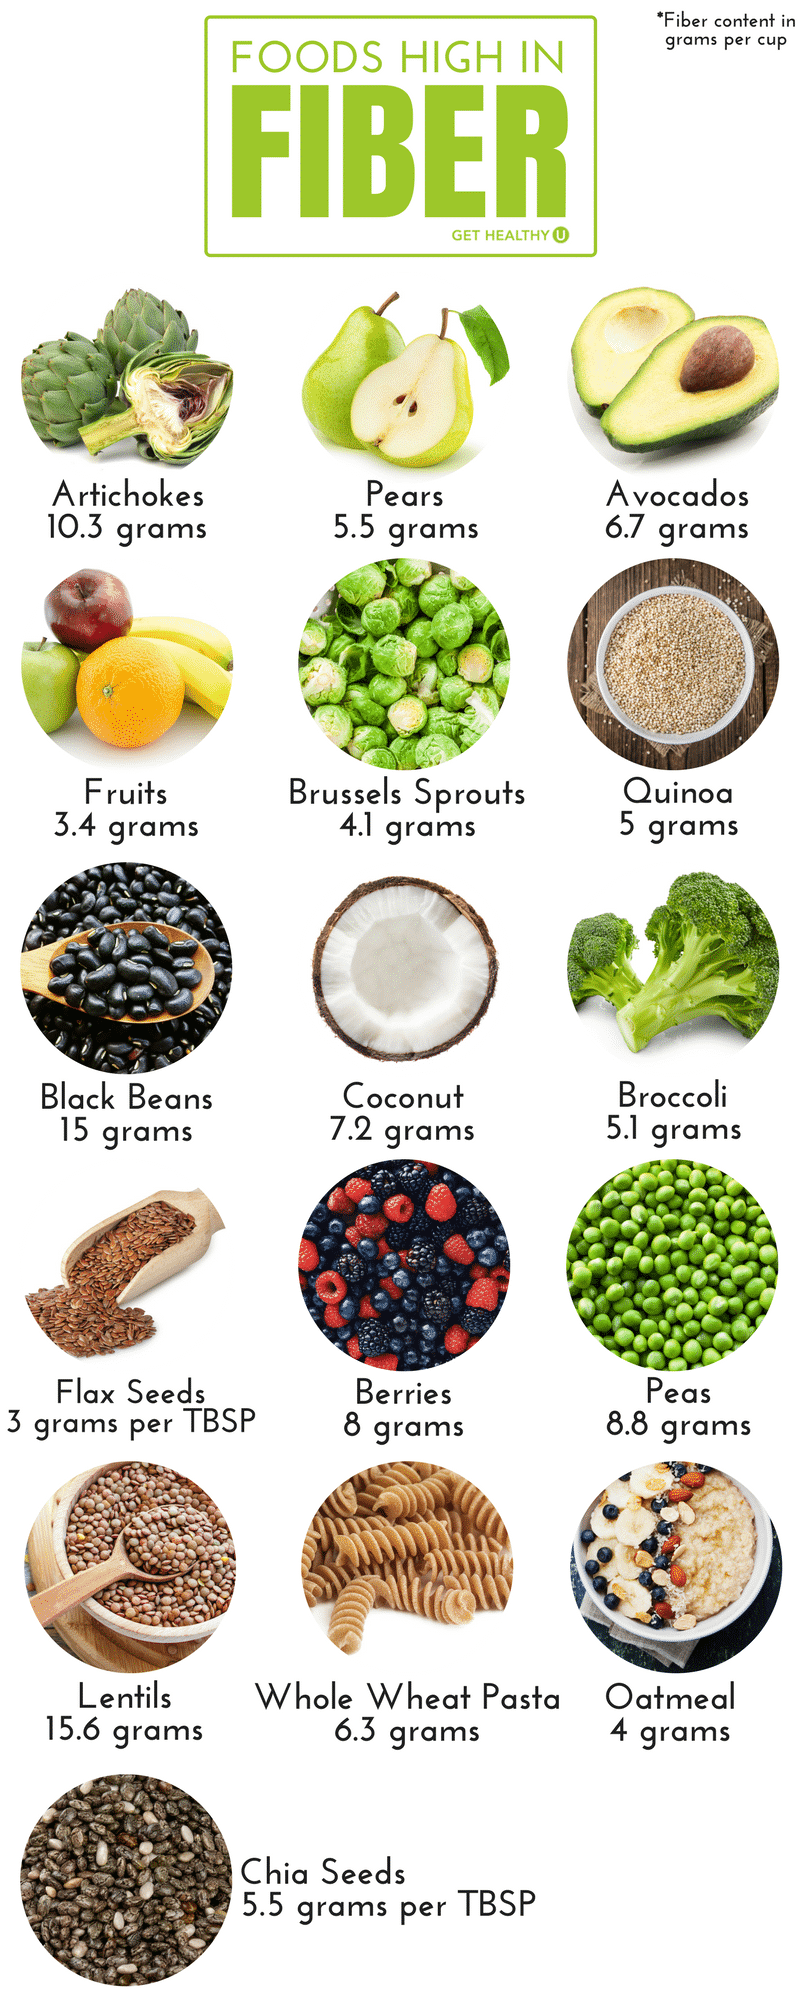 What Types Of Food Have High Fiber